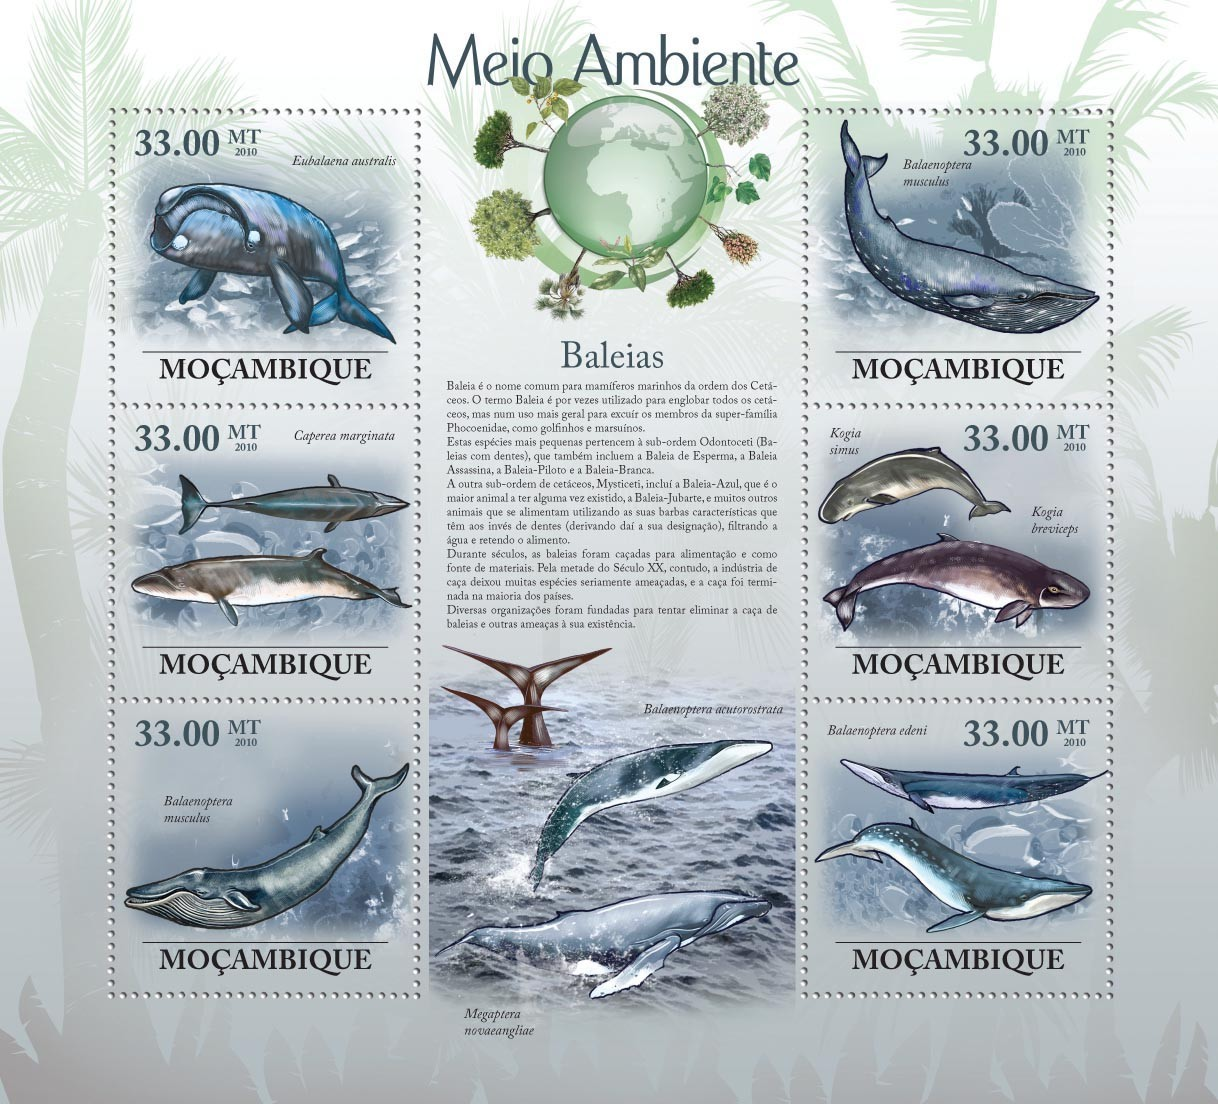 Whales ( Eubalaena australis, Caperea marginata, Balaenoptera musculus, etc..) - Issue of Mozambique postage Stamps